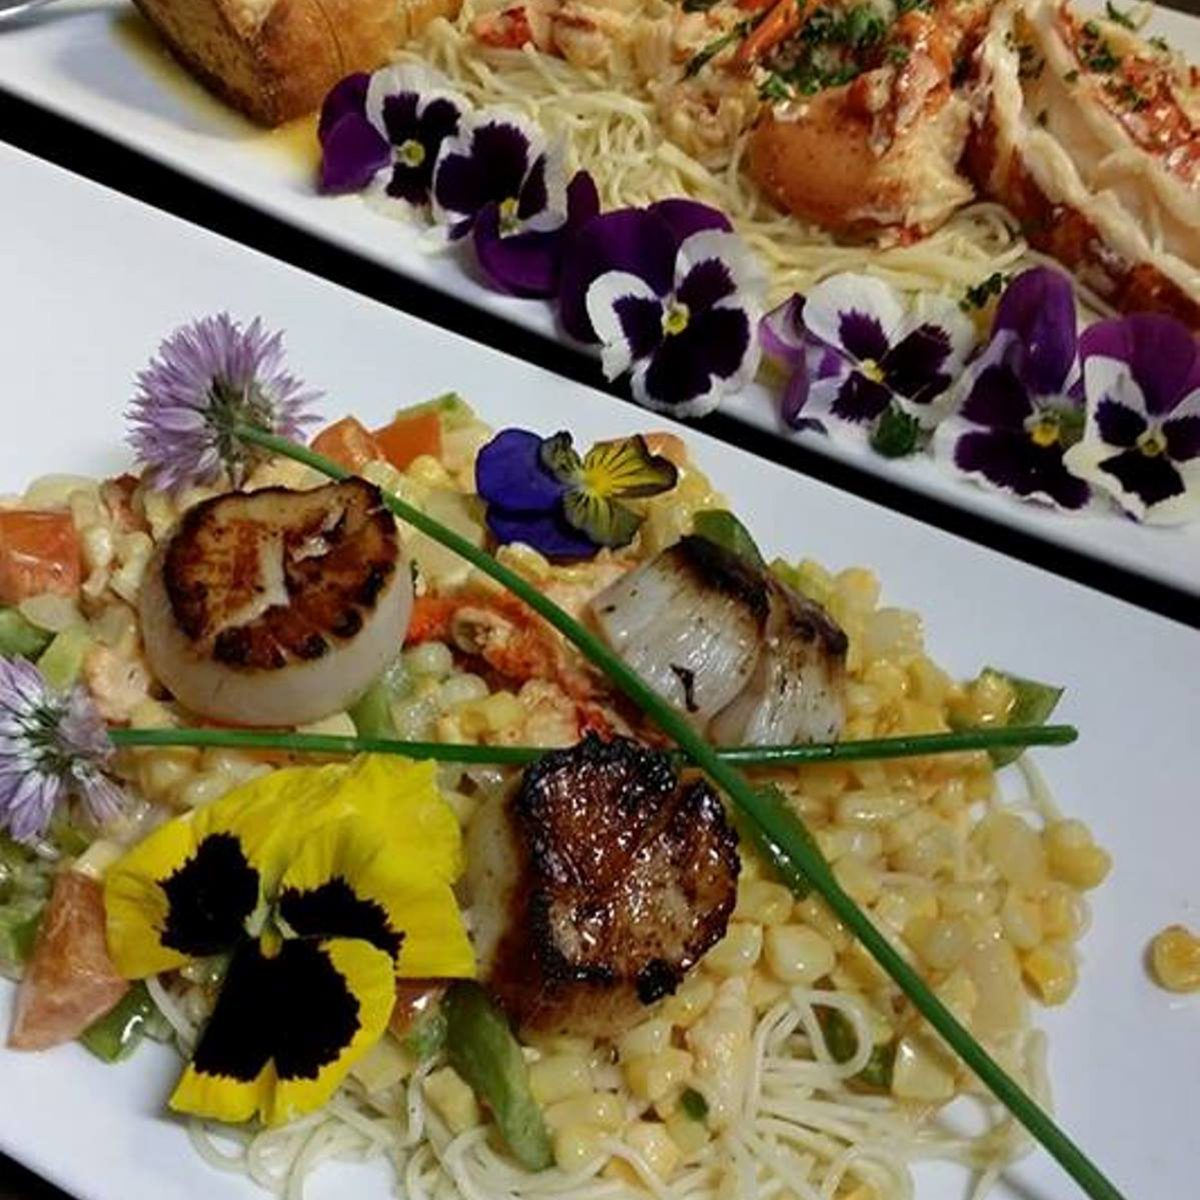 Plates of seafood decorated with flowers at Ebenezer's Pub